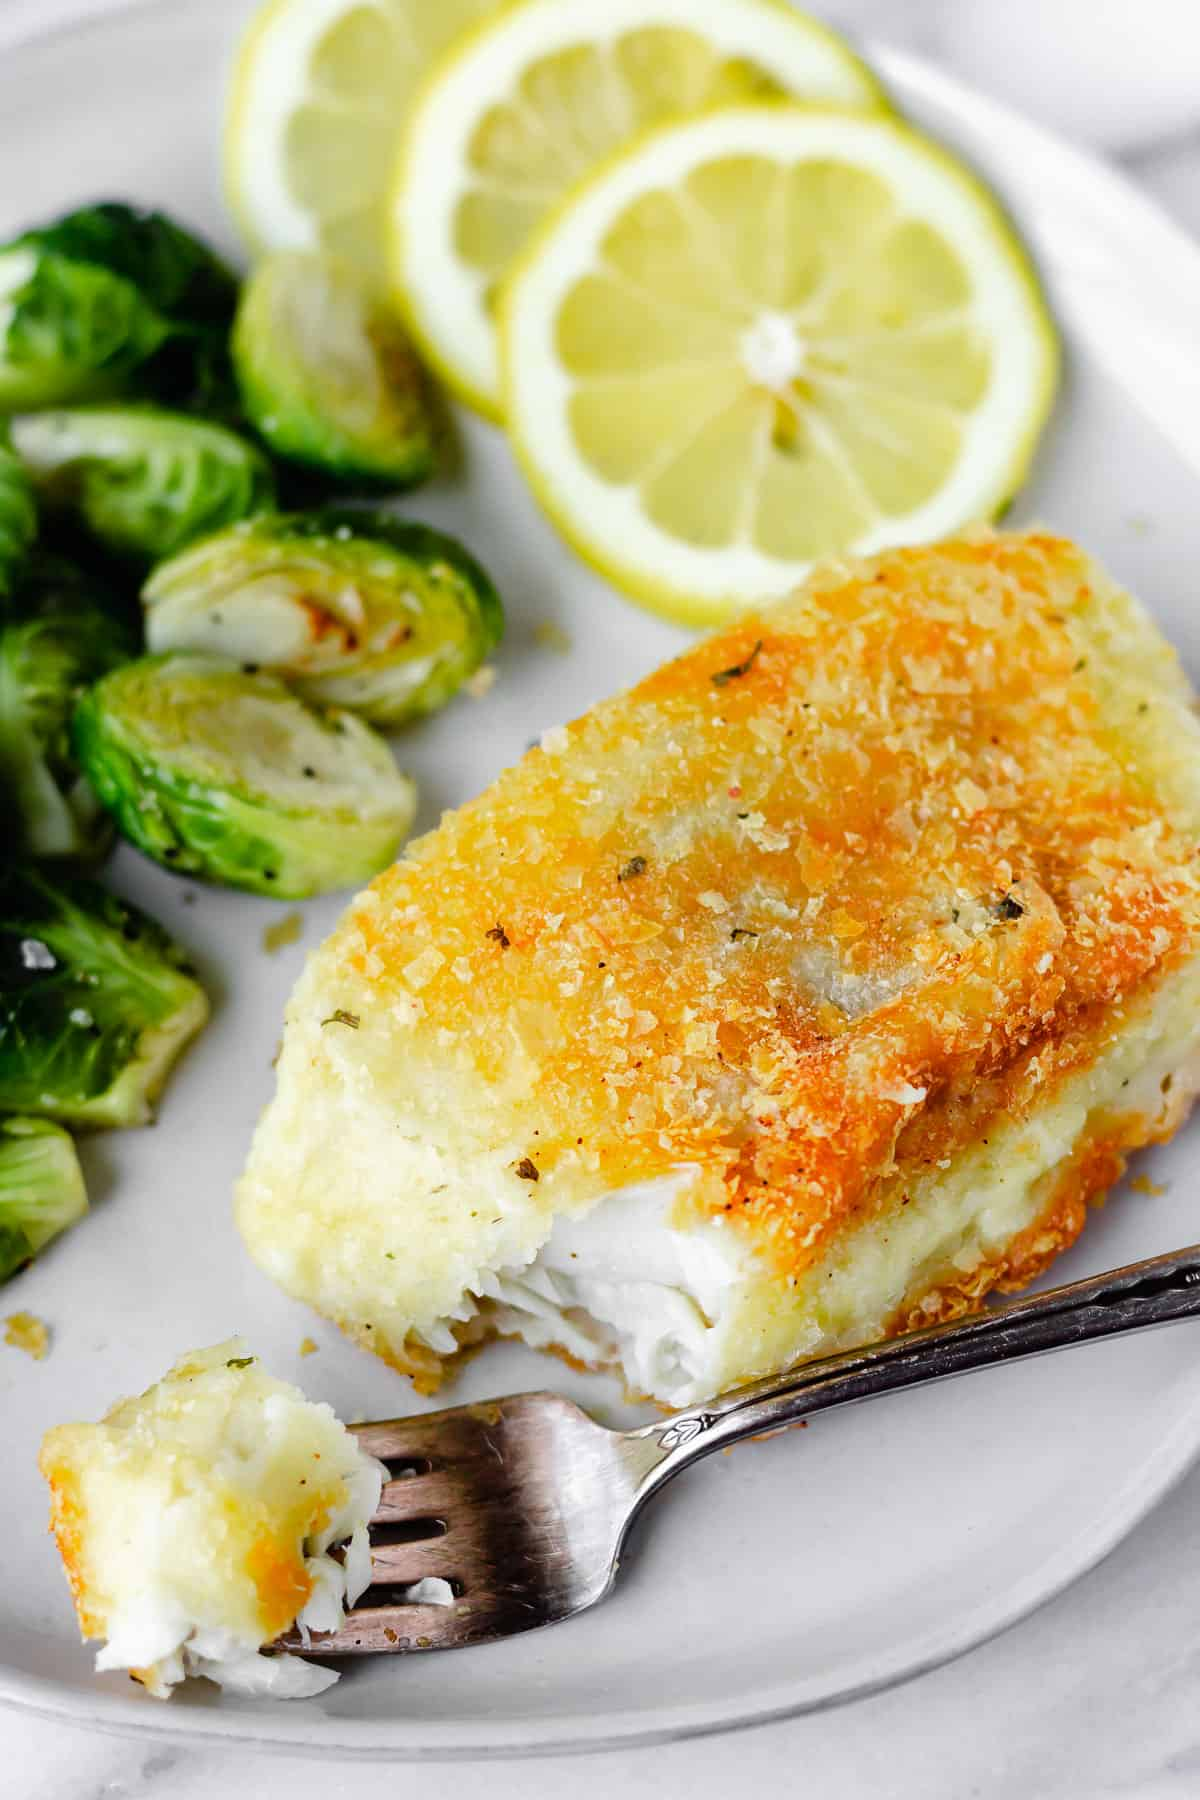 A bite of potato crusted cod on a fork in front of the rest of the fillet with brussels sprouts and lemon slices in the background